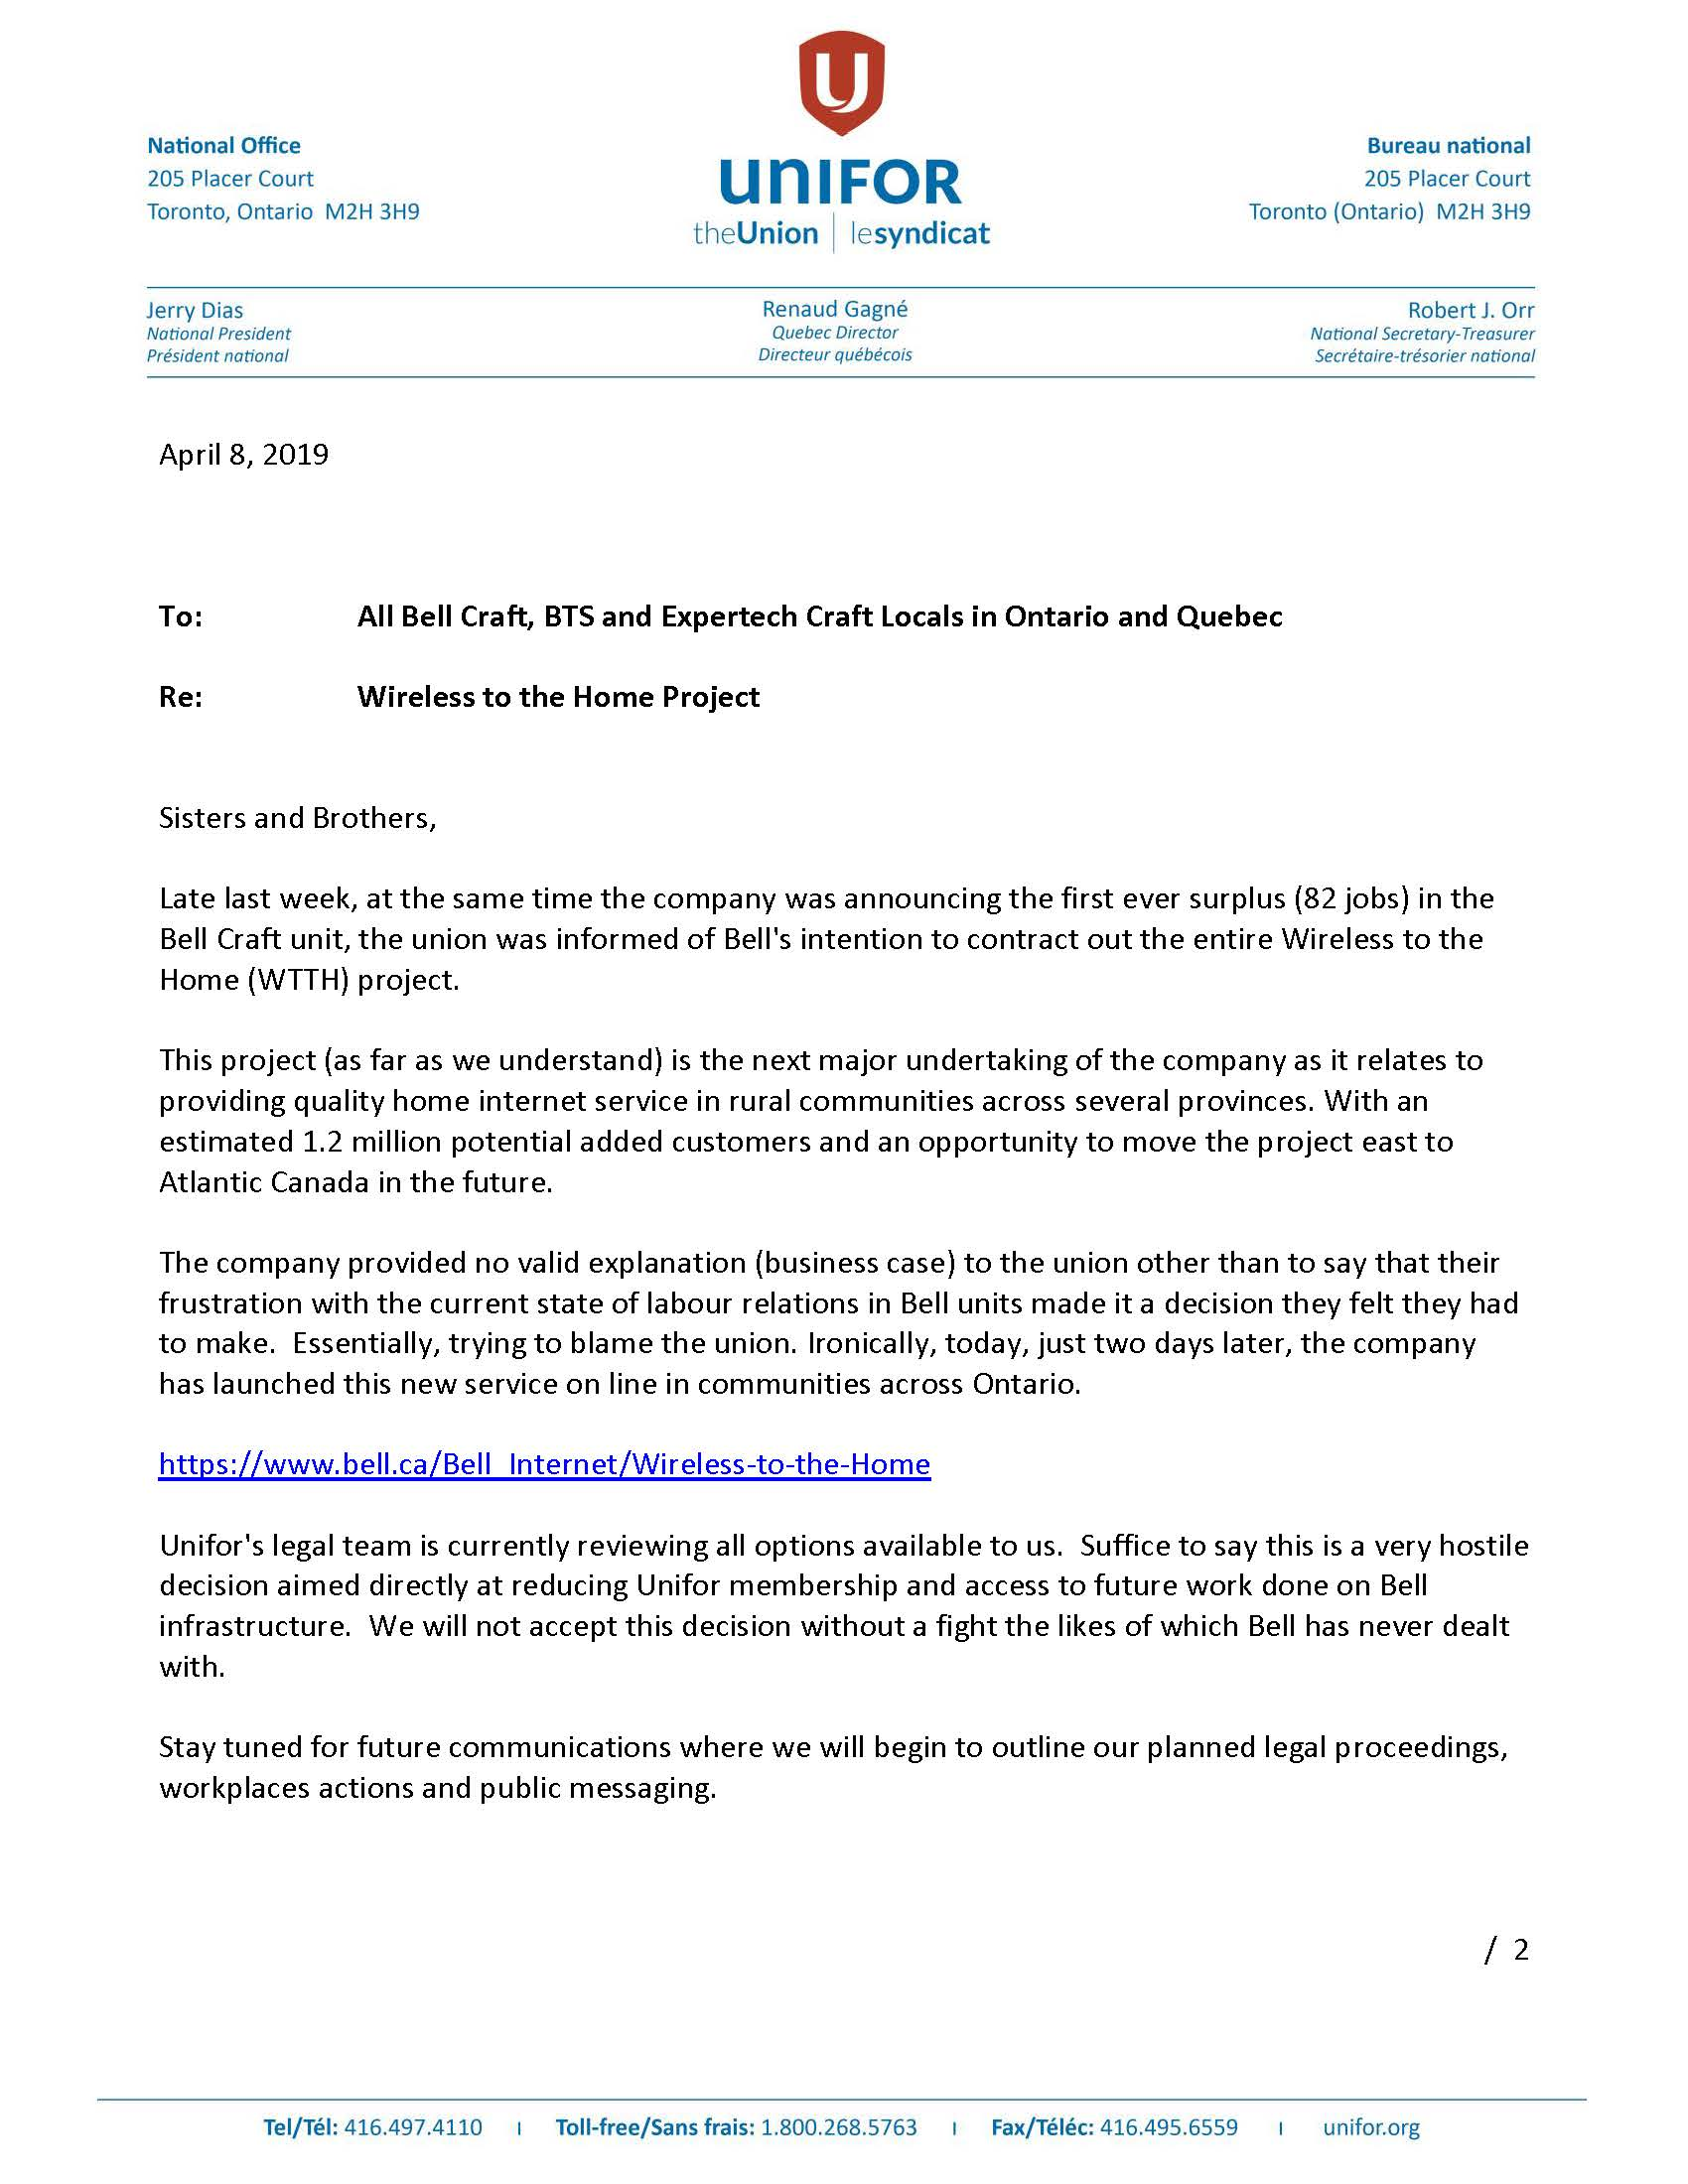 2019-04-08-Letter-to-Locals-Ontario-and-Quebec-re-Wireless-to-the-Home-Project[4962]_Page_1.jpg